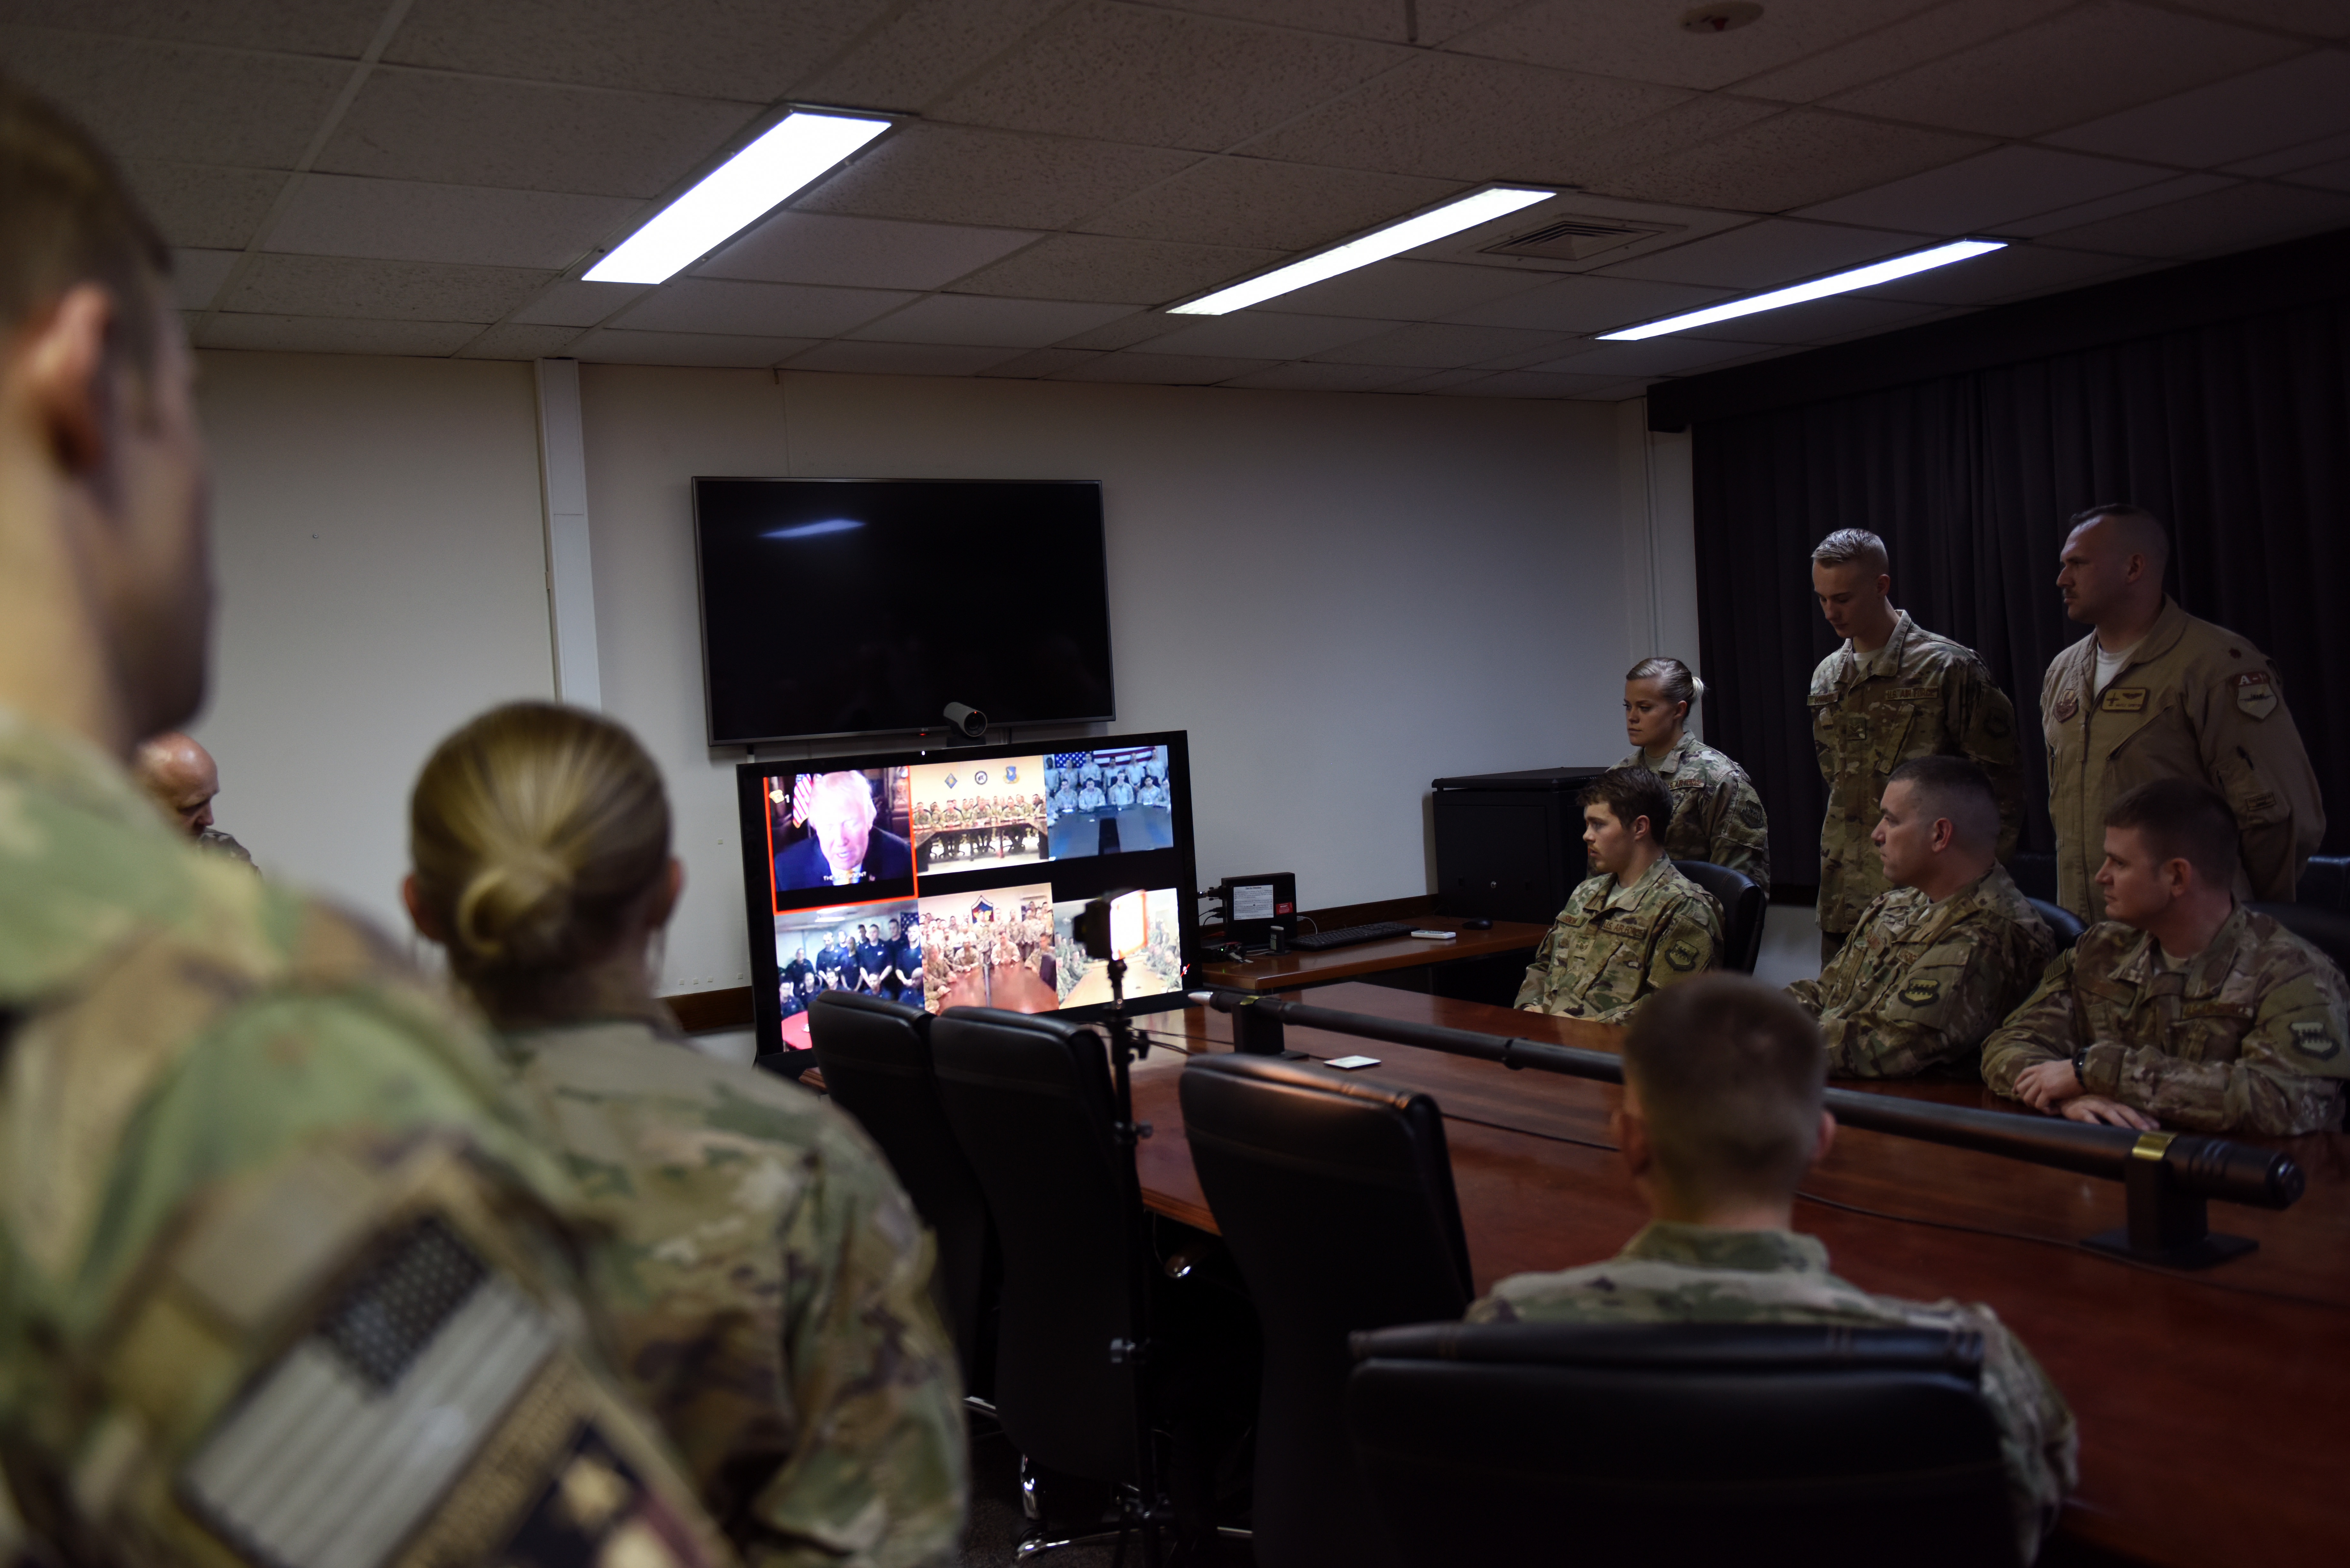 Airmen from the 74th Expeditionary Fighter Squadron, talk to President Donald Trump at Incirlik Air Base, Turkey, Nov. 23, 2017. The 74th EFS was one of five deployed military units, one representing each branch of the military, chosen to receive the traditional Thanksgiving call from the President. This years marks the first time the President conducted a video teleconference call with deployed personnel in lieu of the traditional telephone call. (U.S. Air Force photo by Staff Sgt. Jason Huddleston)